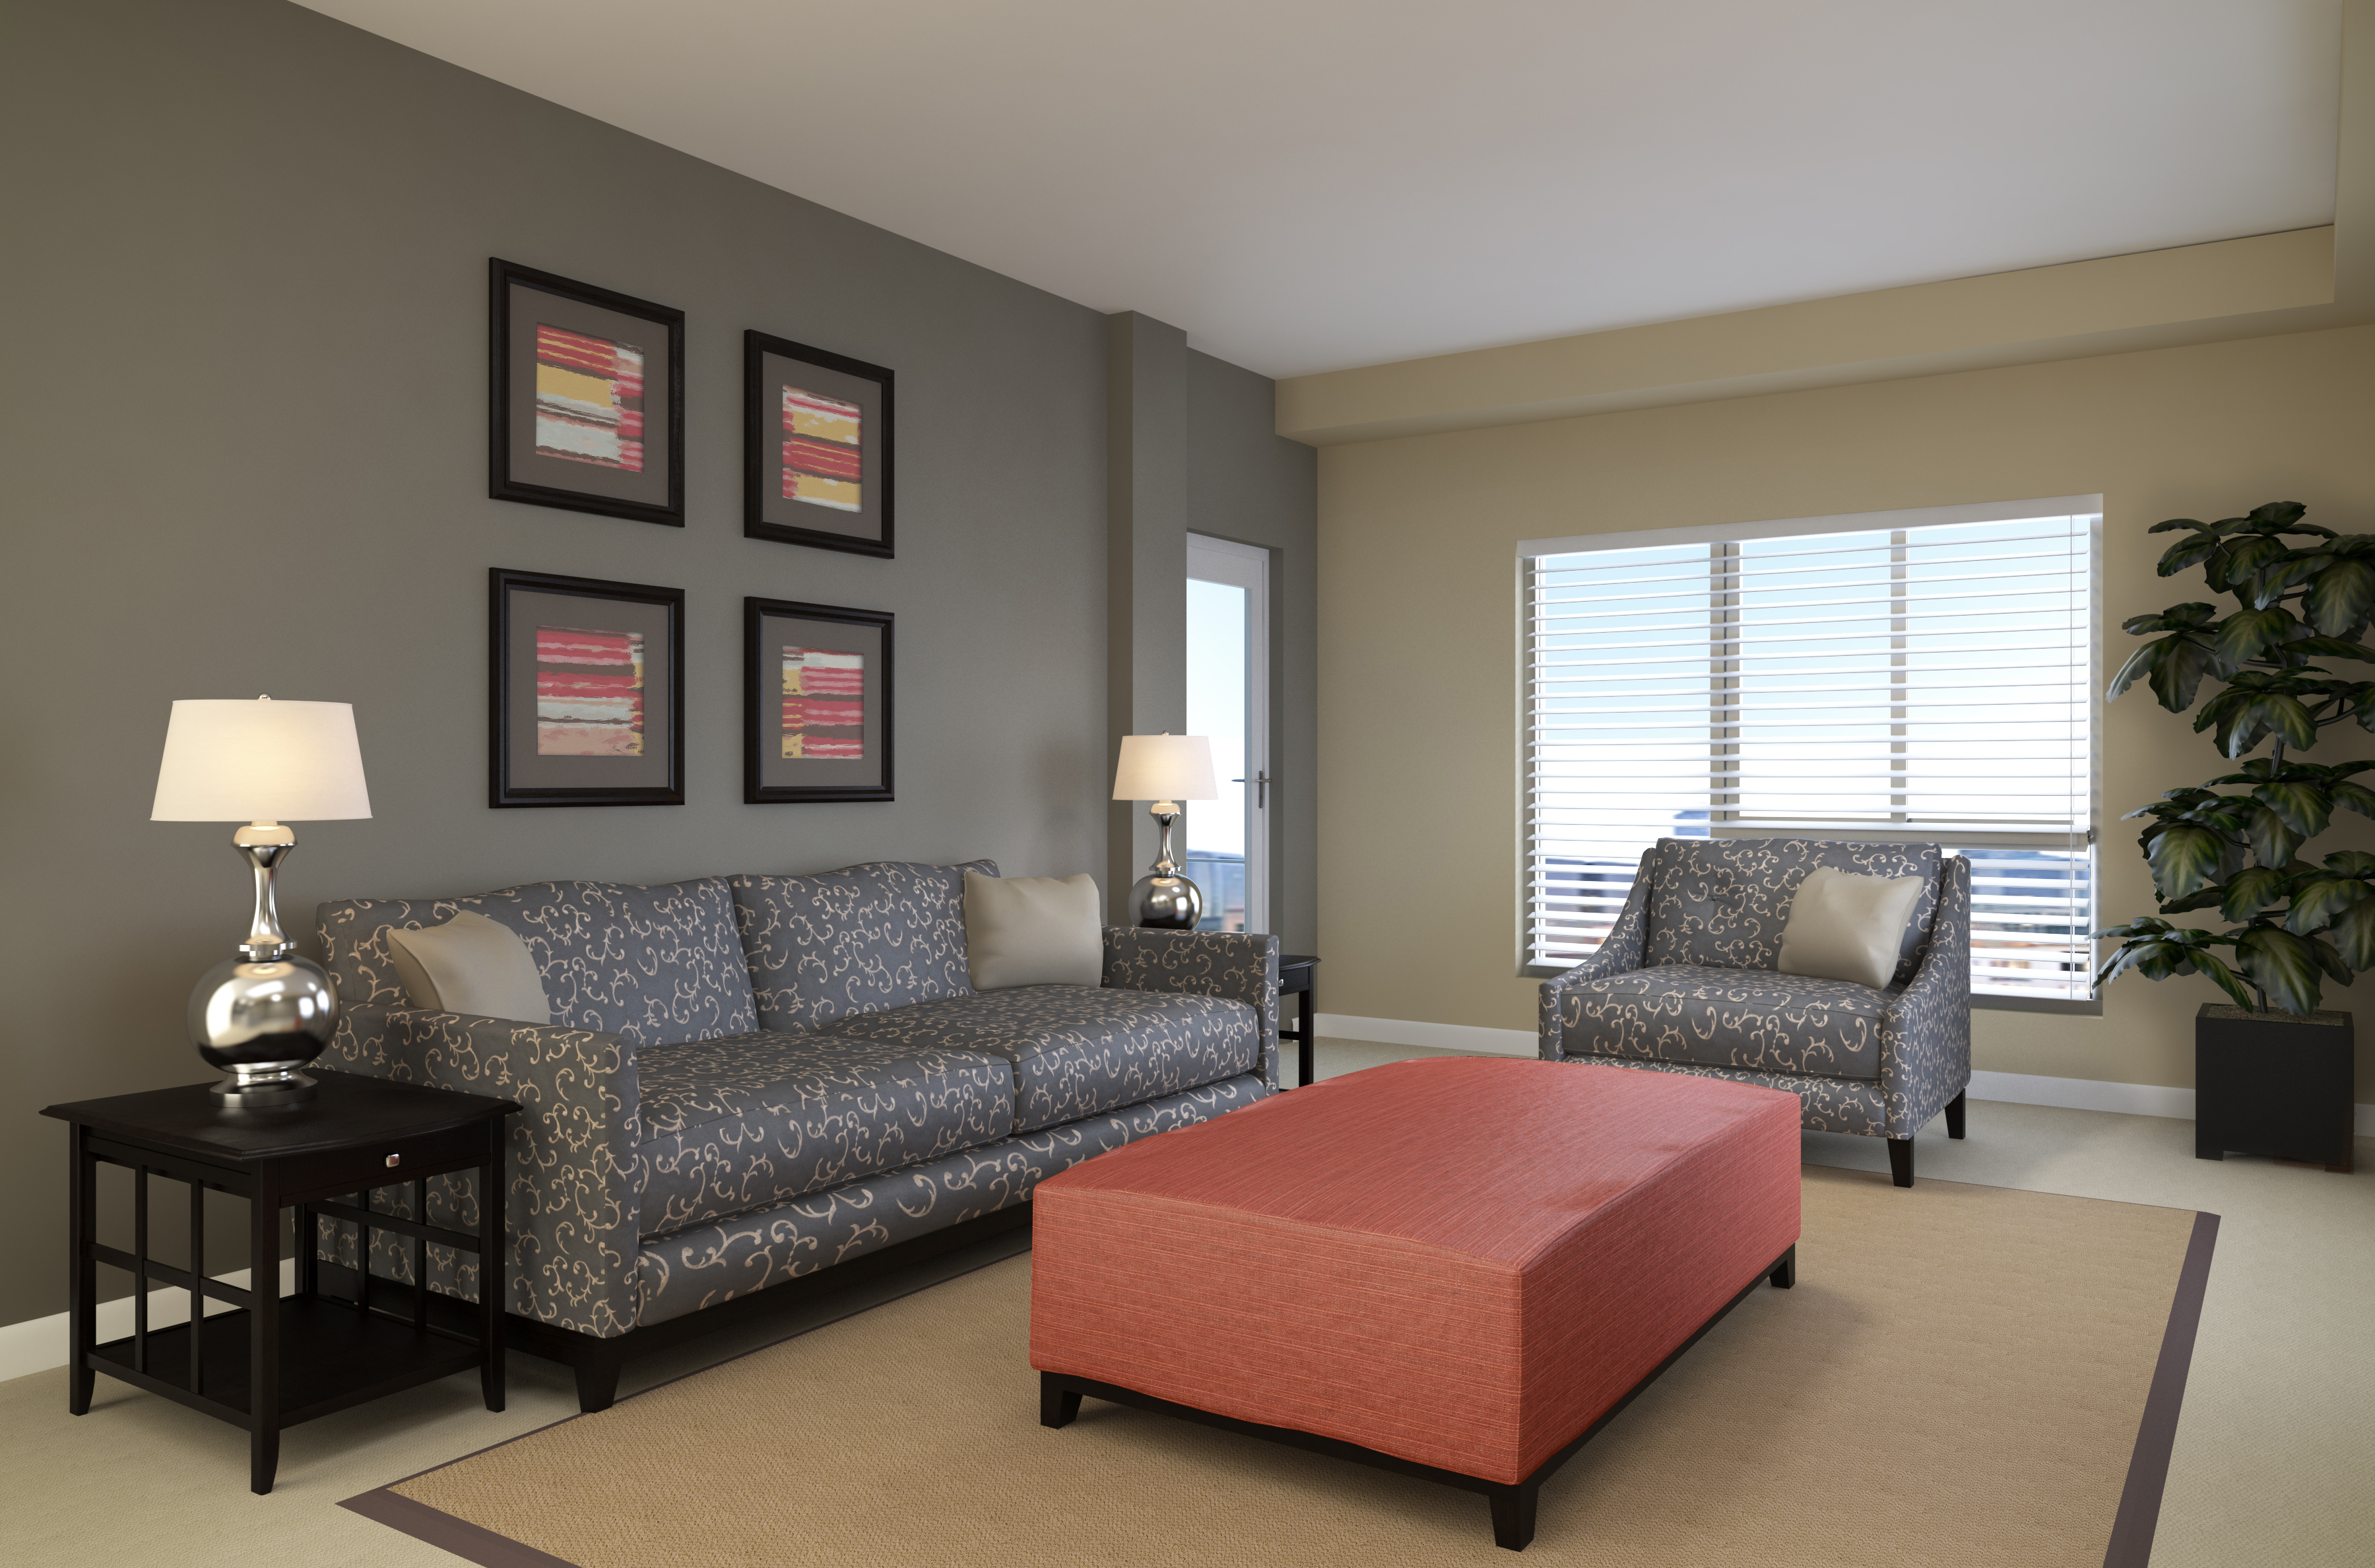 Introducing a Living Room at Genesee, it's Anything but Standard